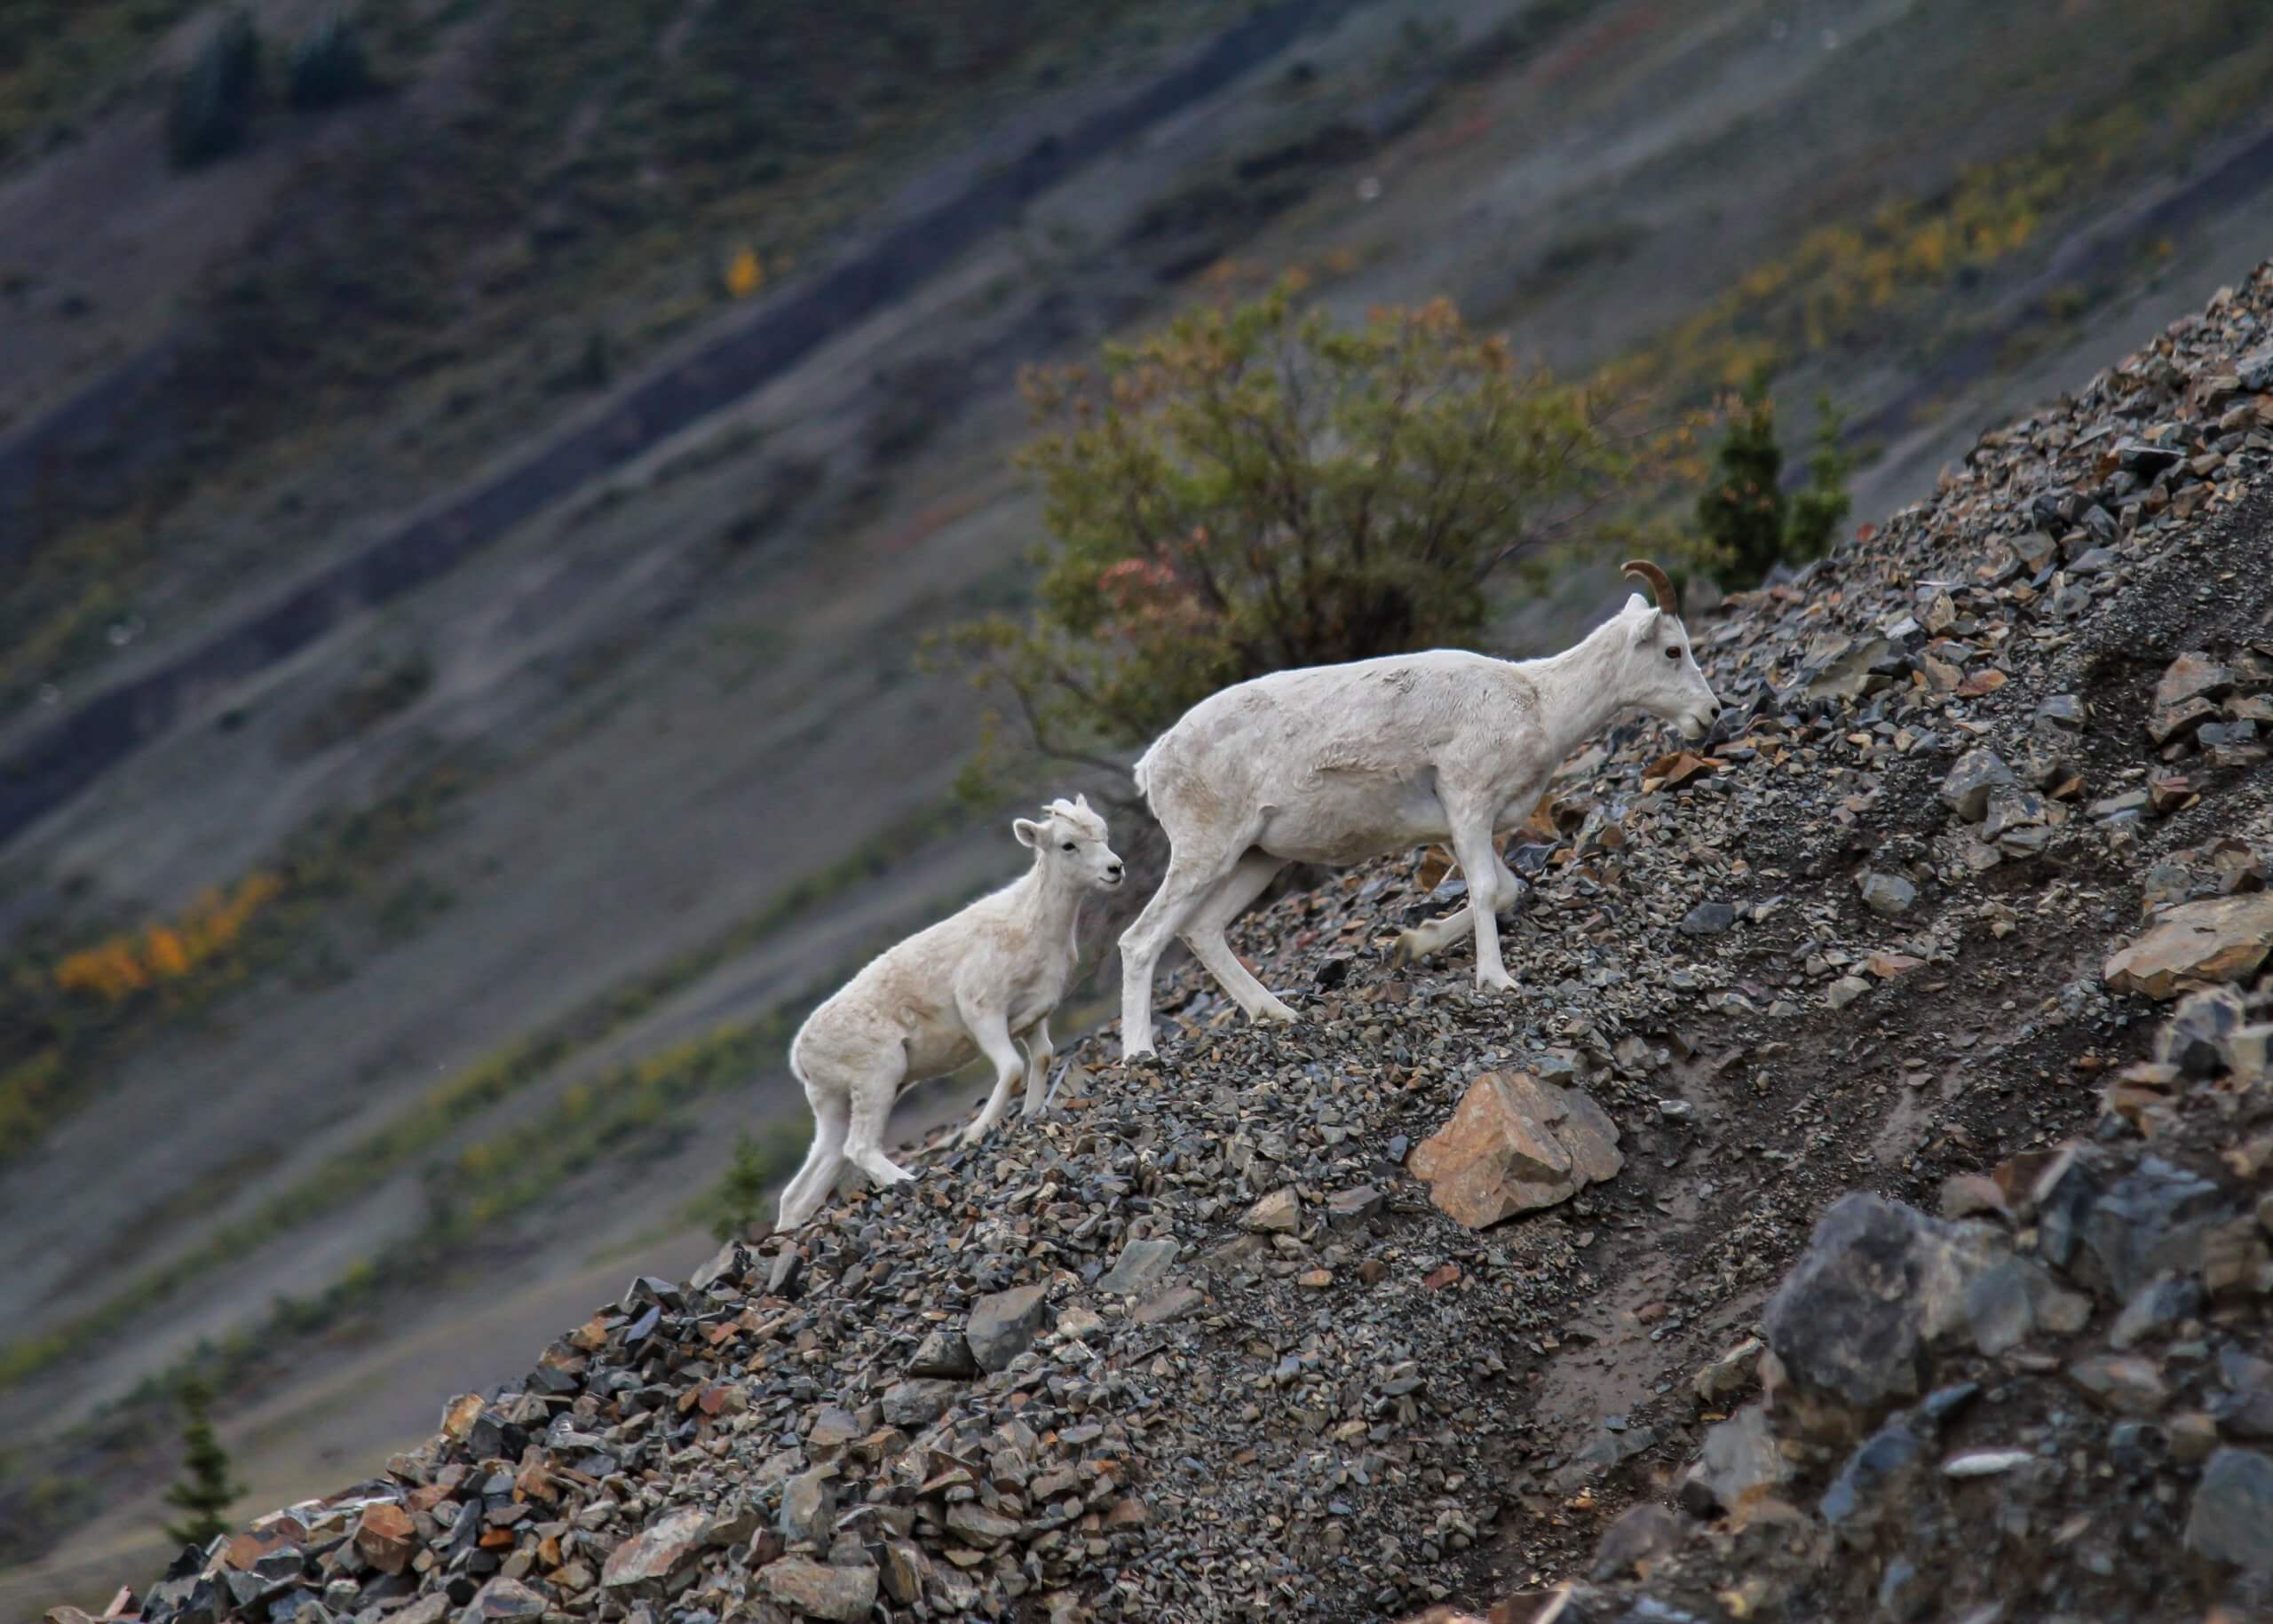 White ewe climbs the shale rock up Sheep Mountain, Yukon while her young lamb follows closely from behind